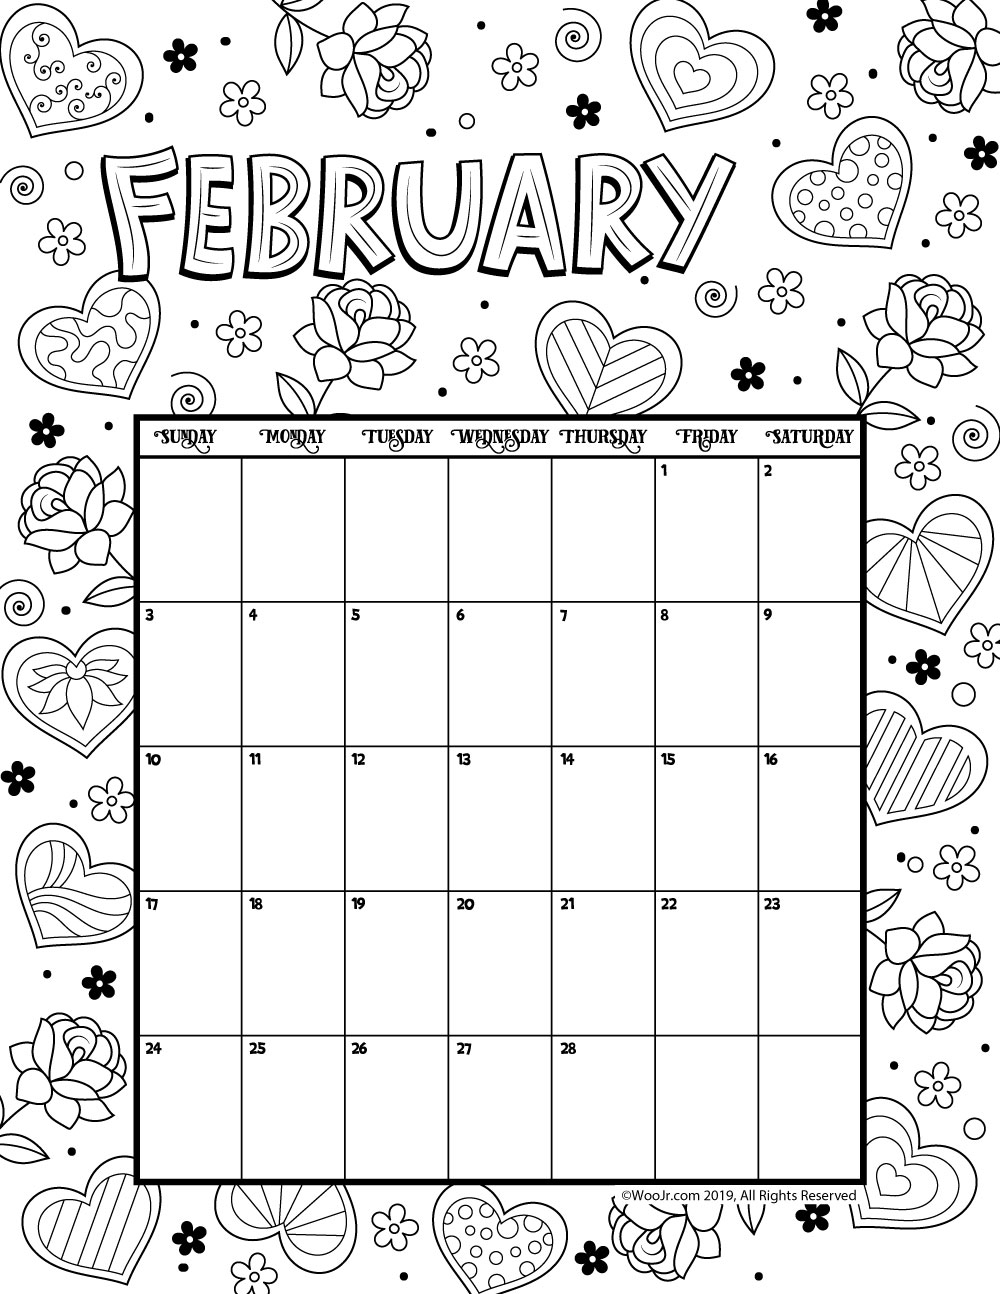 February Calendar 2019.February 2019 Coloring Calendar Woo Jr Kids Activities